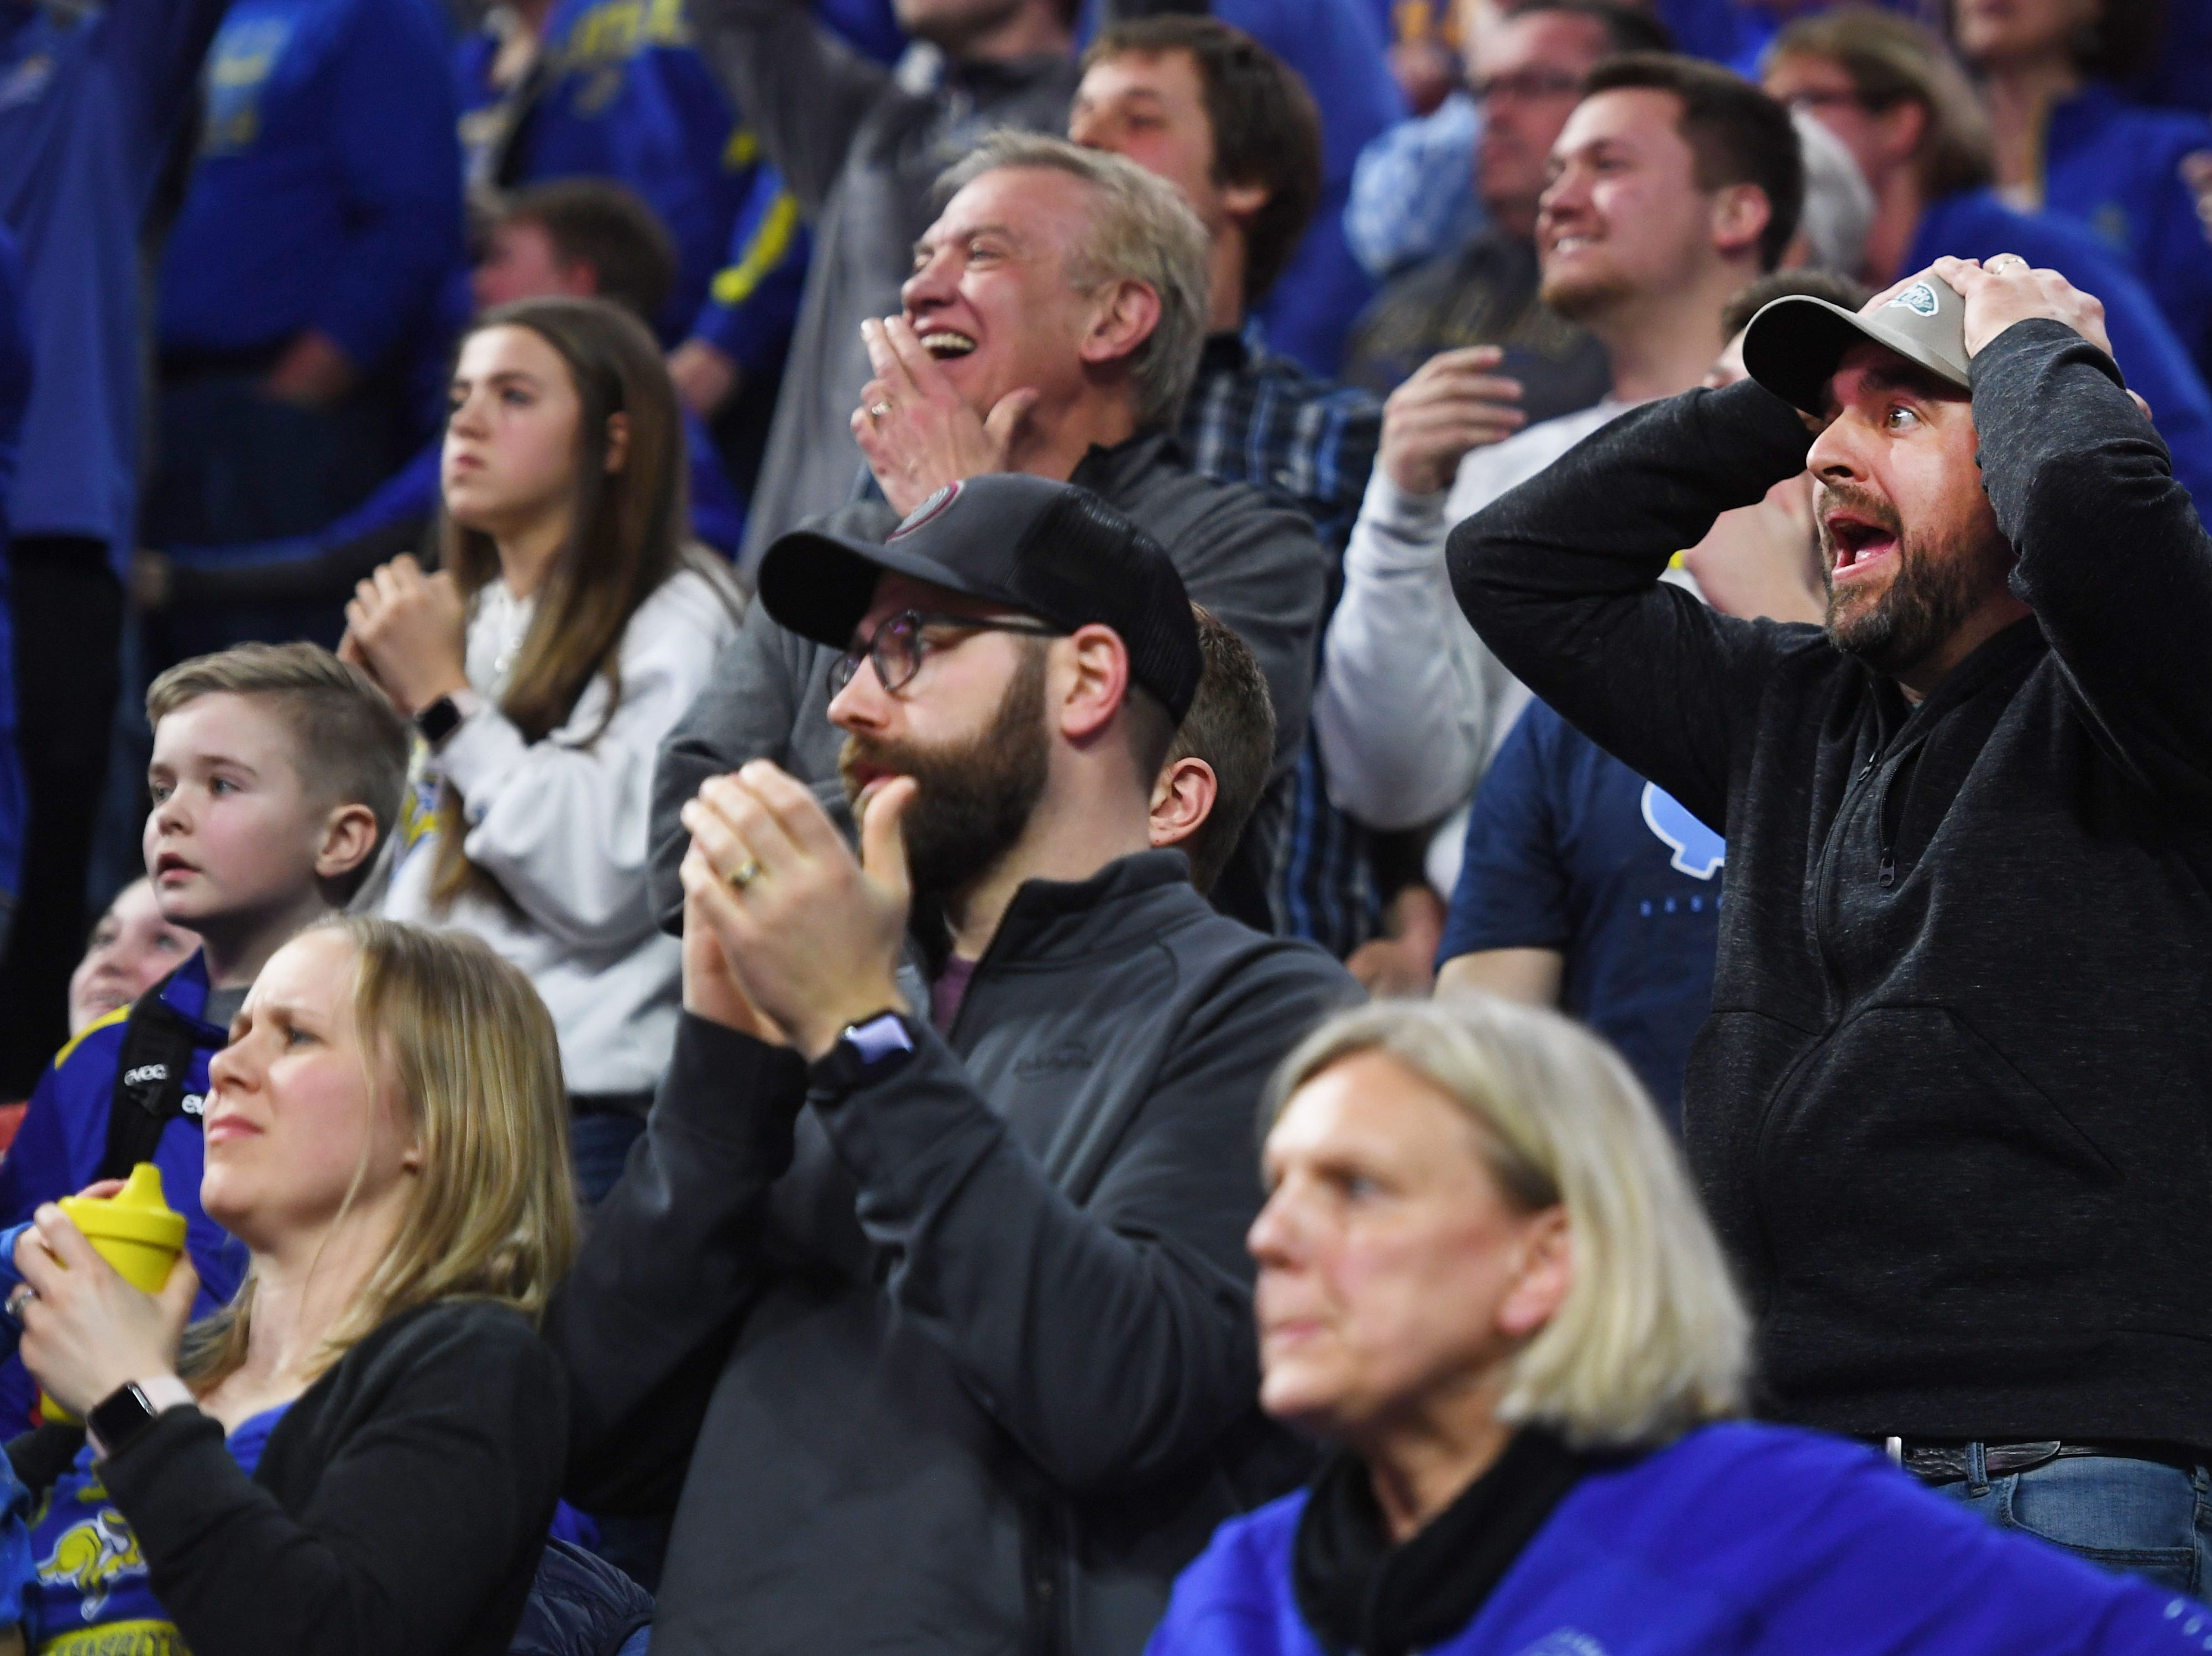 SDSU fans during the game against Western Illinois Saturday, March 9, in the Summit League tournament at the Denny Sanford Premier Center in Sioux Falls.